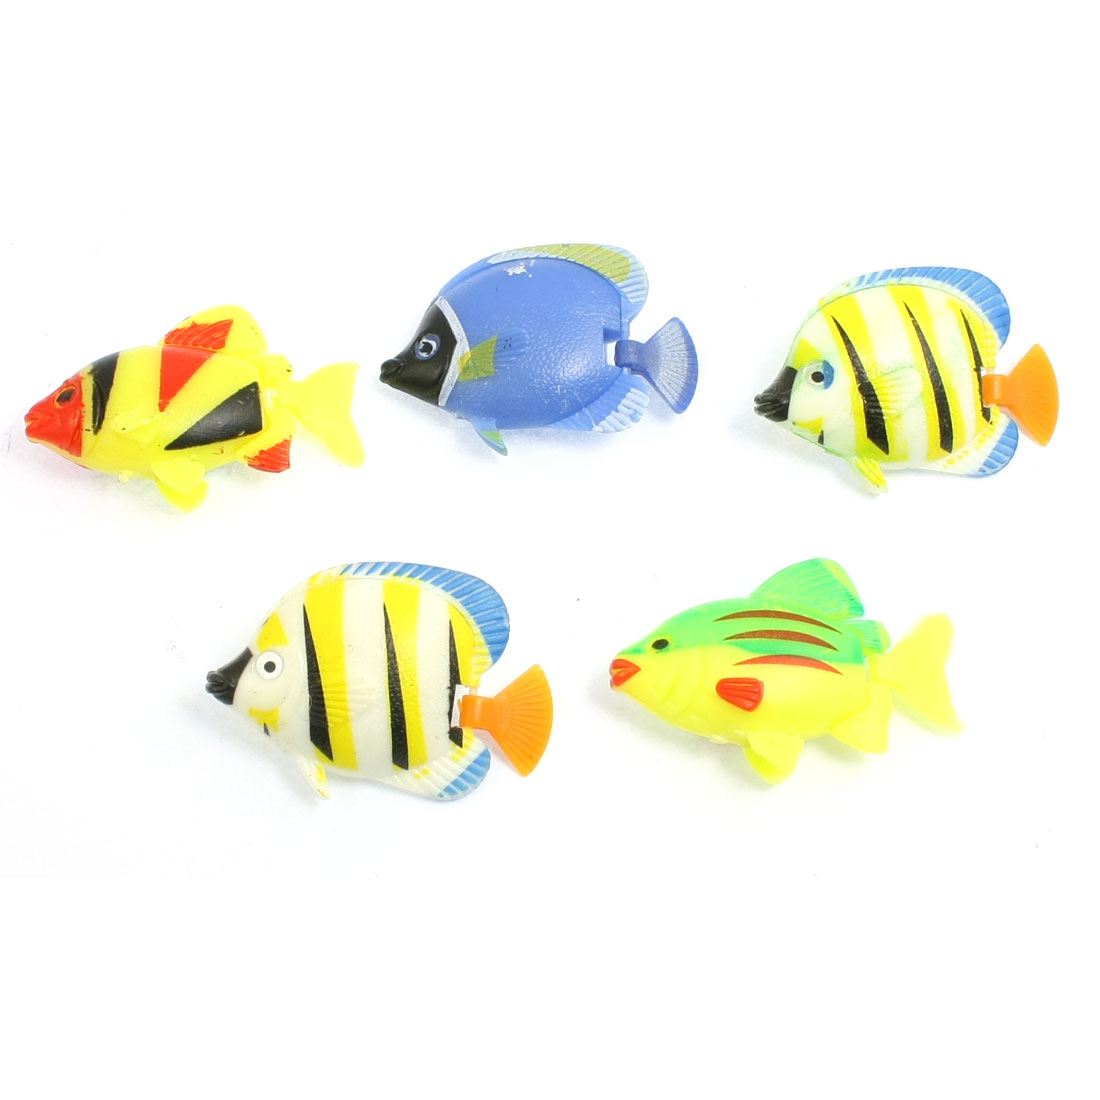 5 Pcs Multicolor Plastic Striped Fishes Decoration for Fish Tank